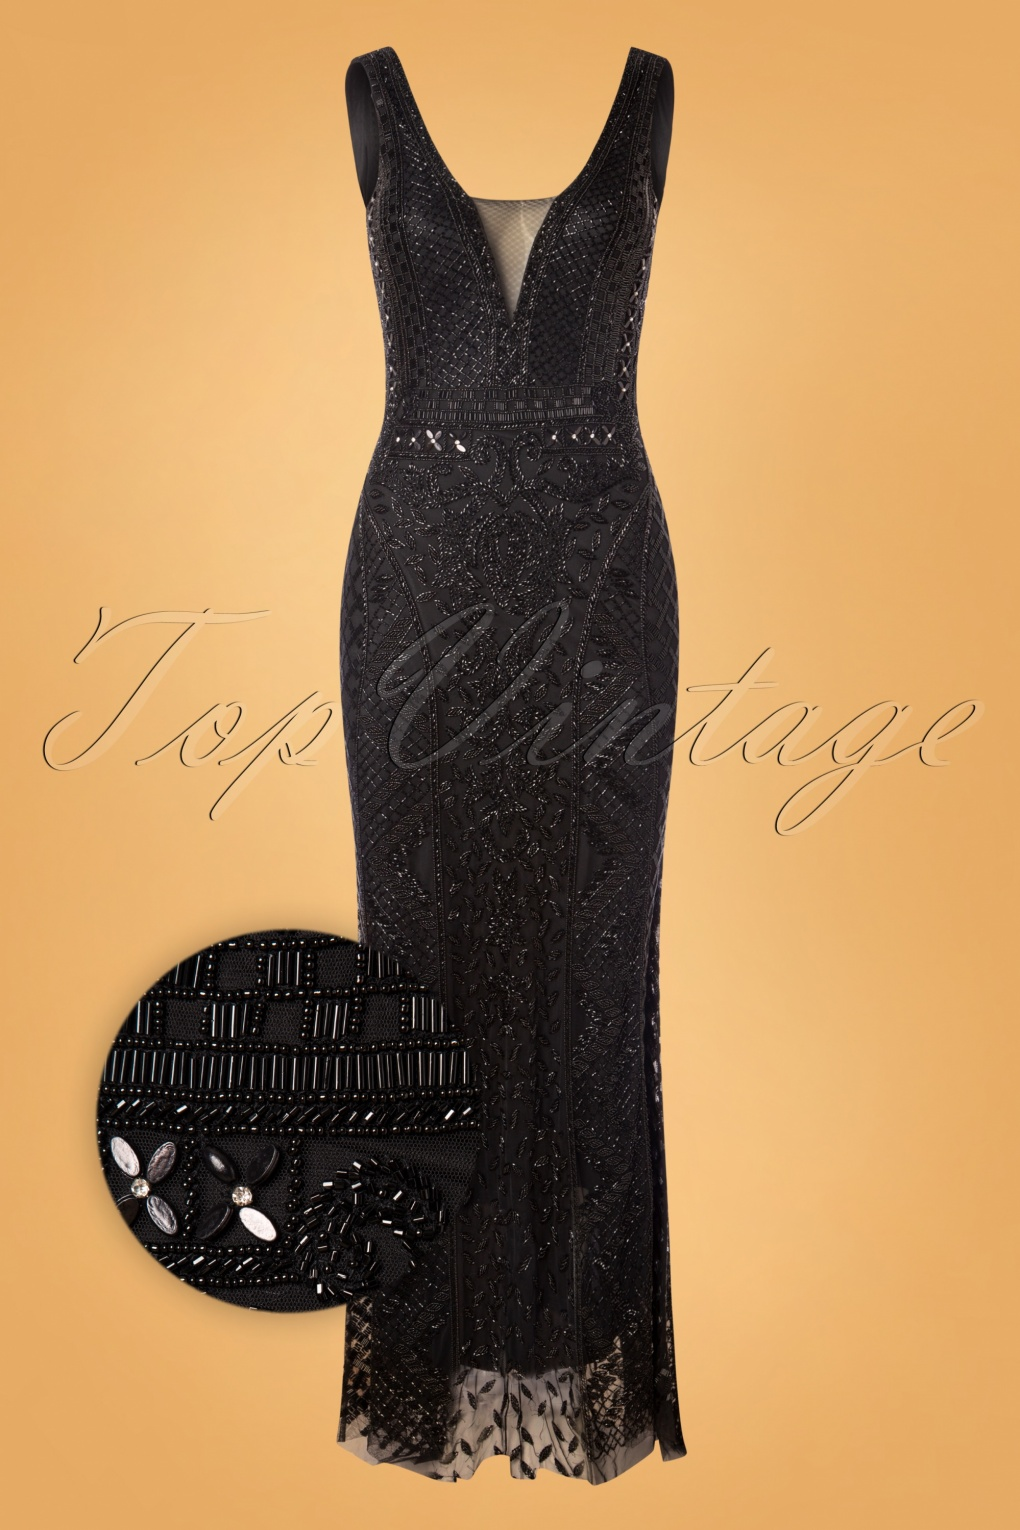 Black Flapper Dresses, 1920s Black Dresses 20s Grace Embellished Maxi Dress in Black £226.39 AT vintagedancer.com